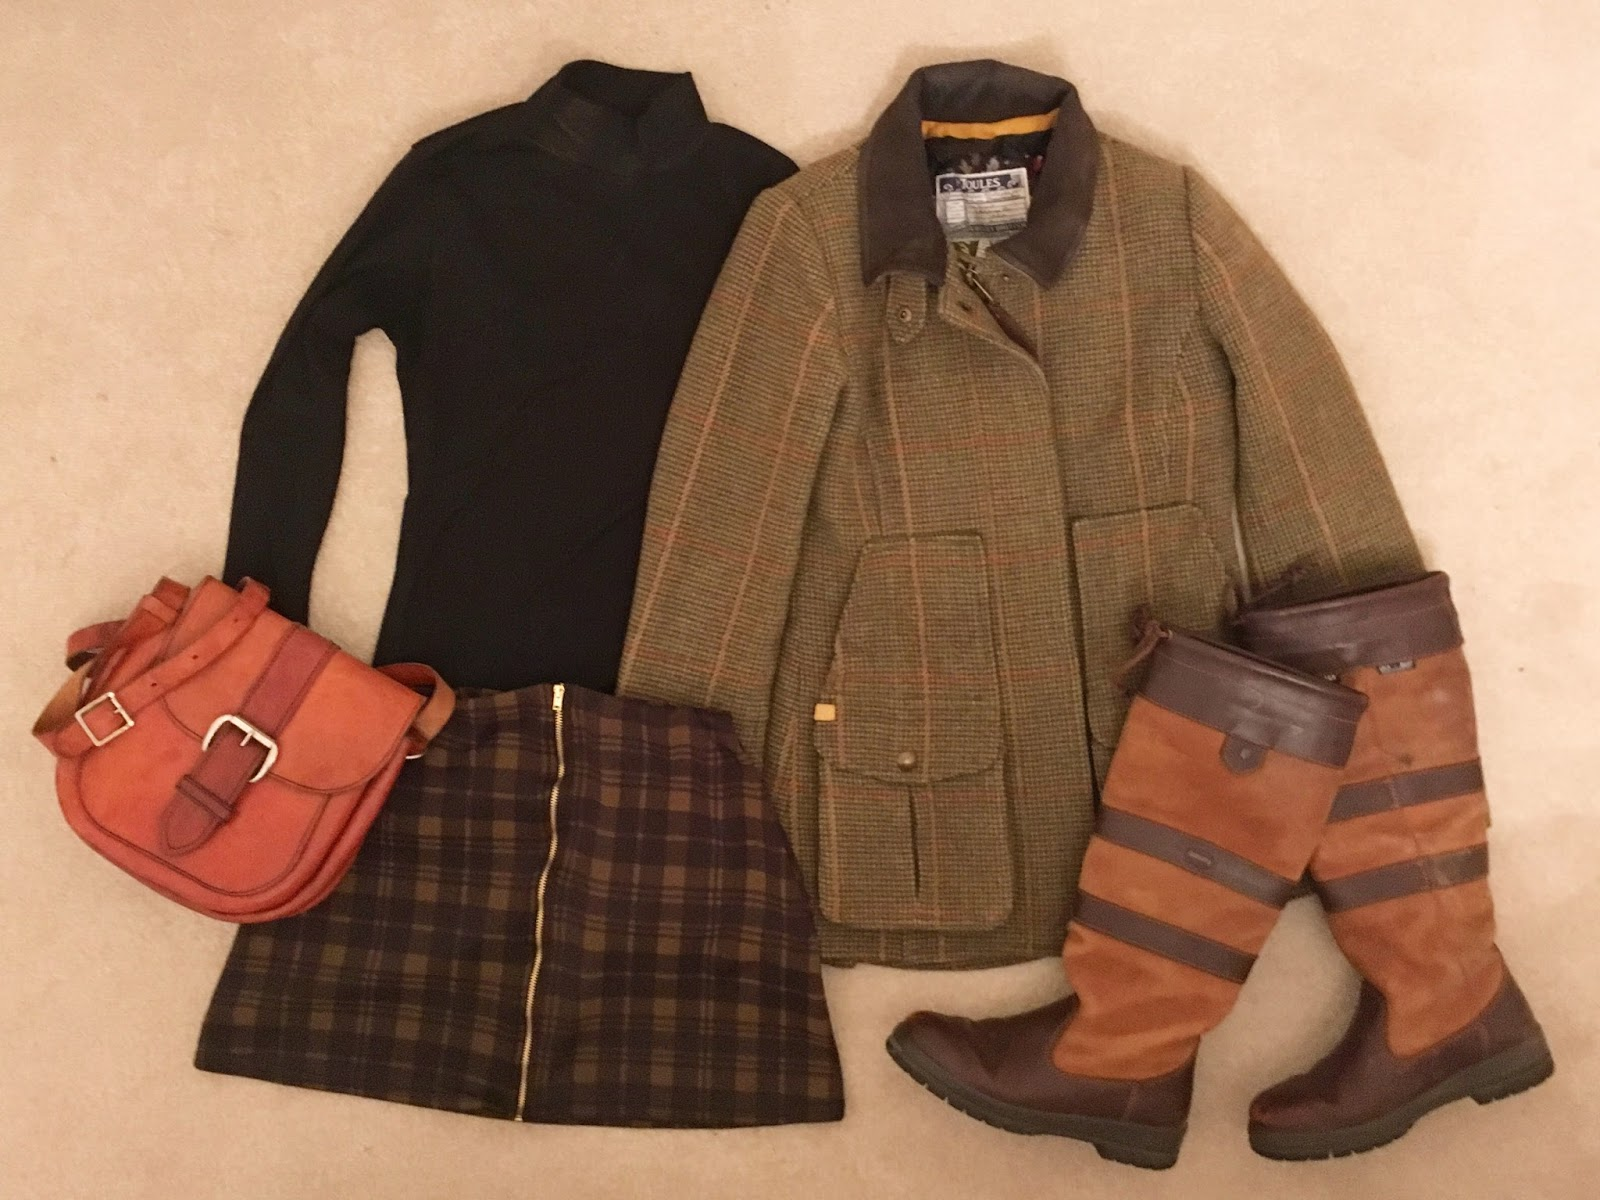 charlotte in england blog - outfit inspiration how to wear modern country style fashion